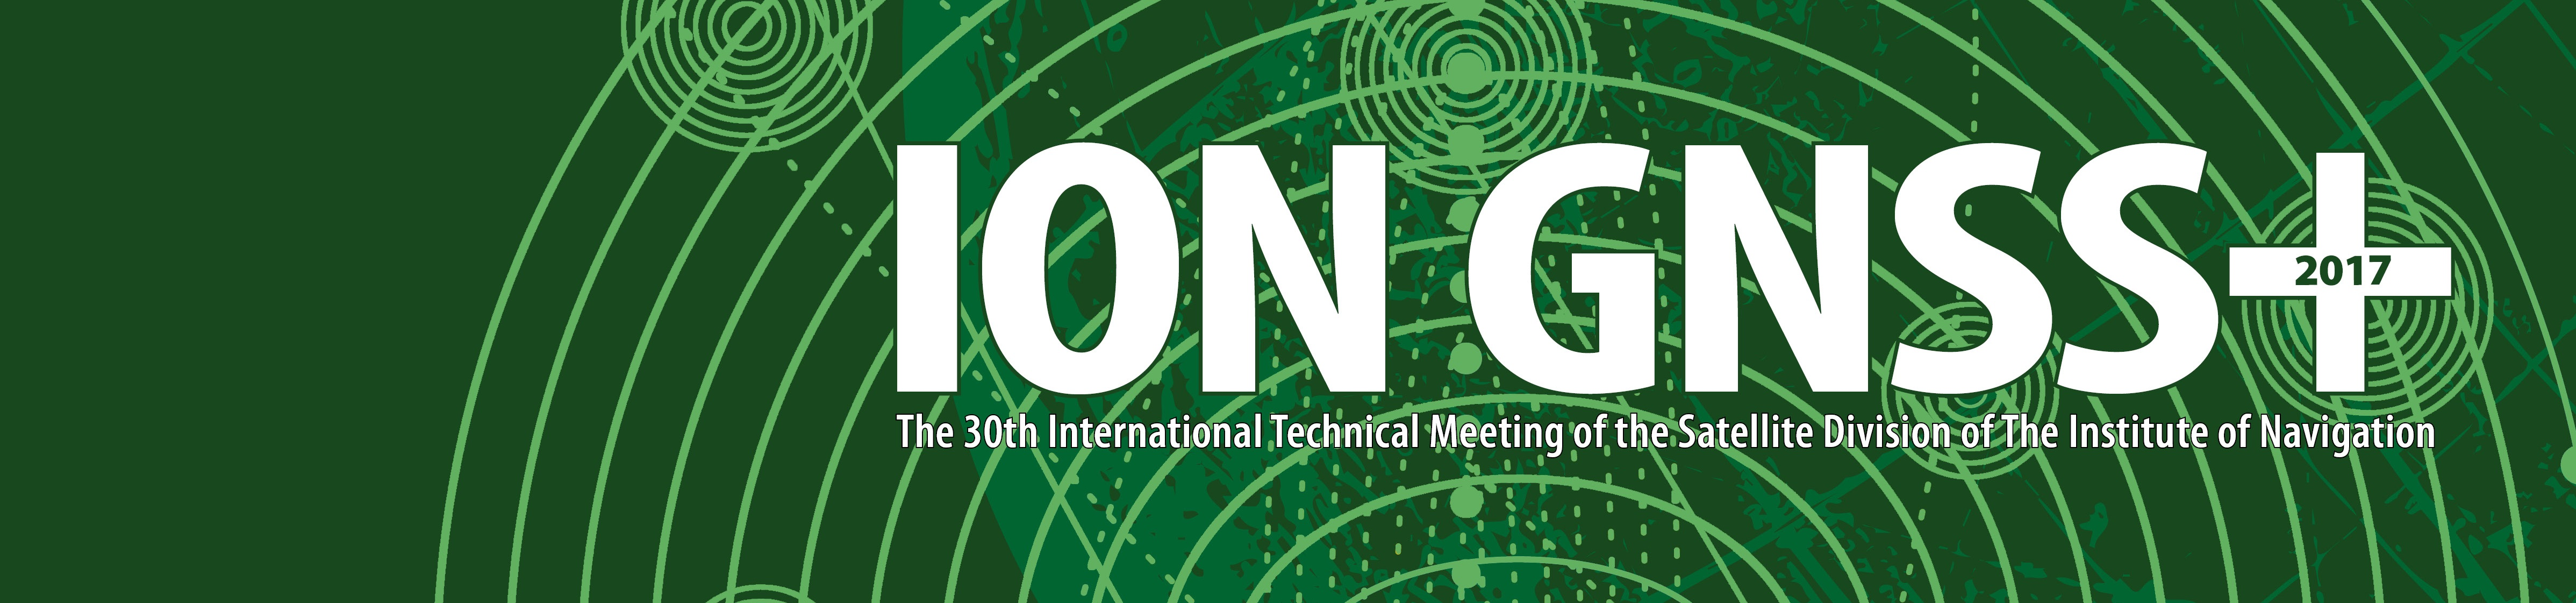 ION GNSS 2017 Subsite